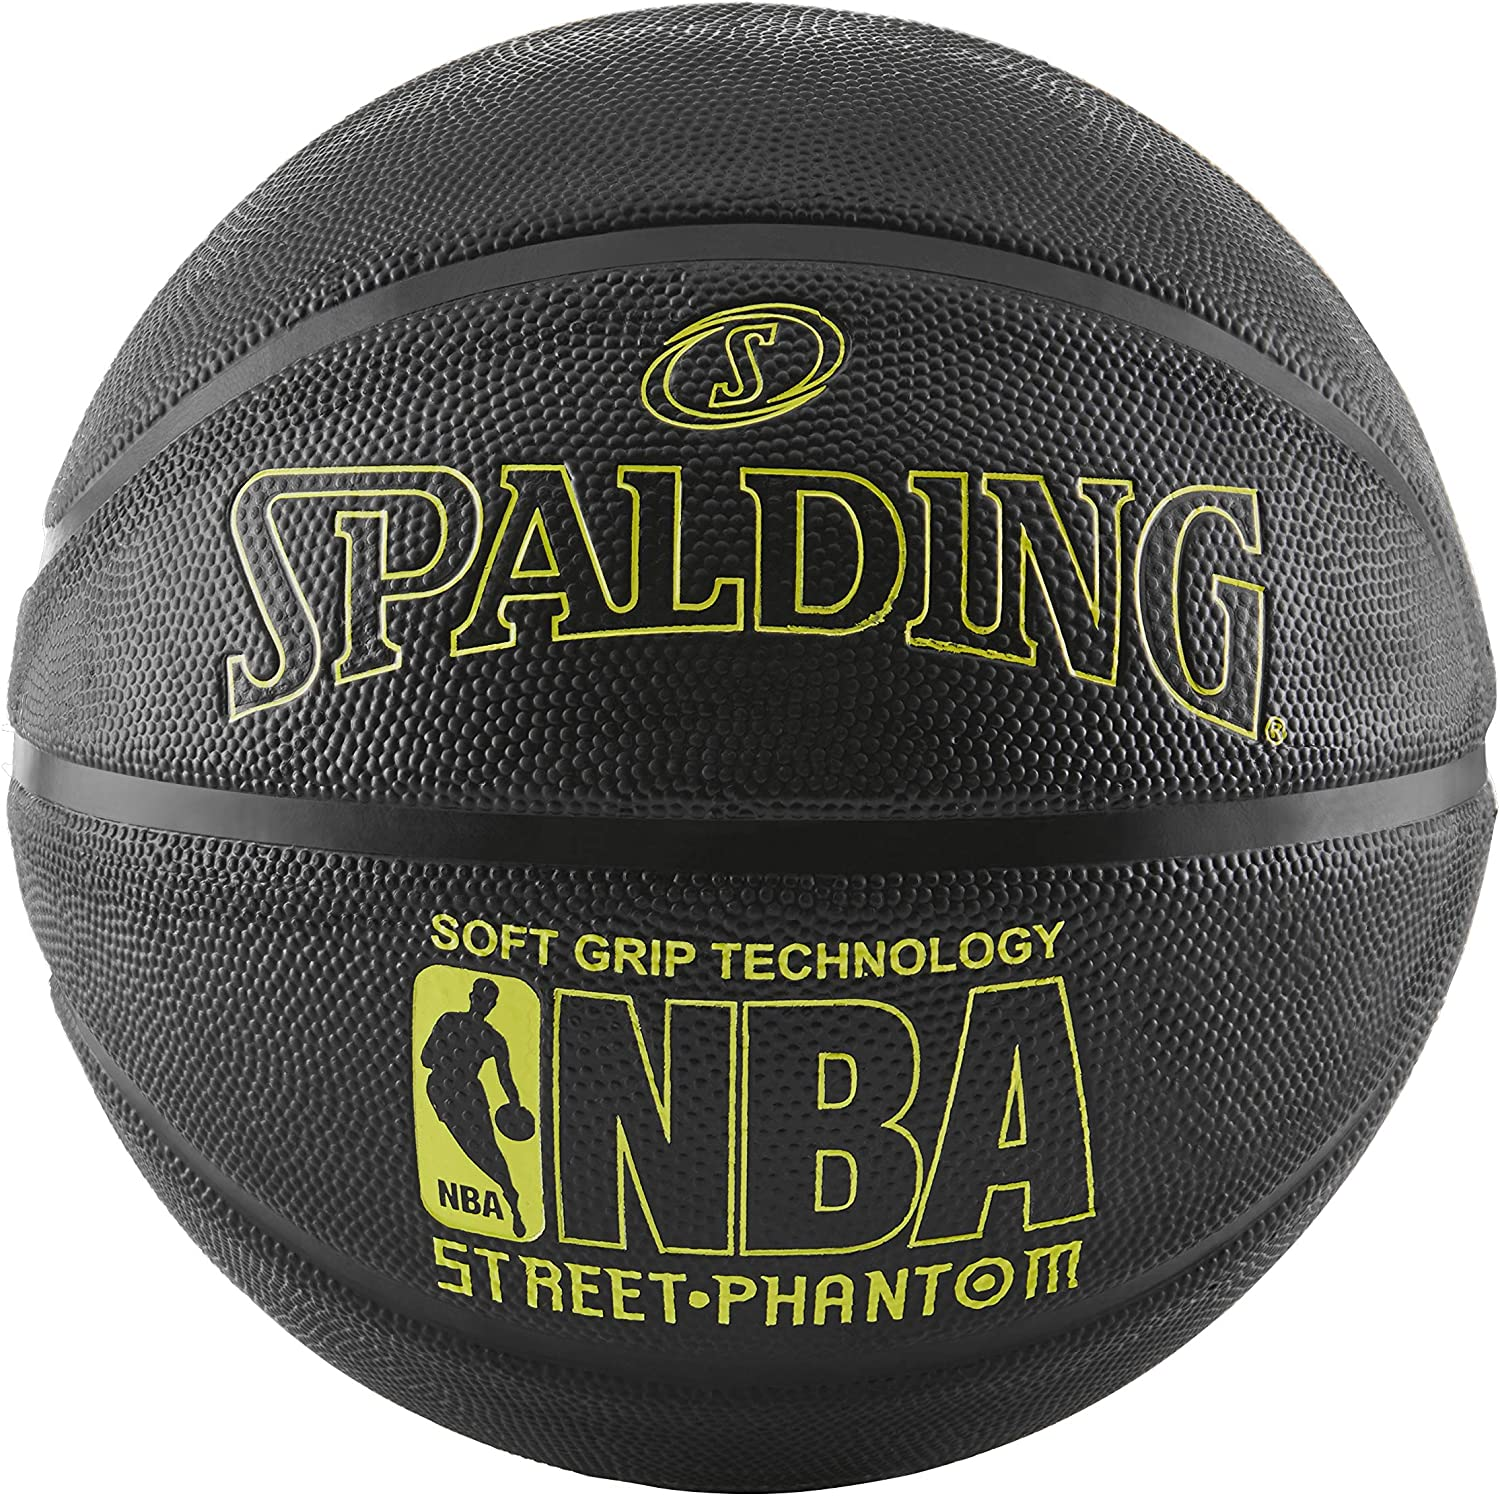 Spalding NBA Street Phantom Official Outdoor Basketball : Sports & Outdoors